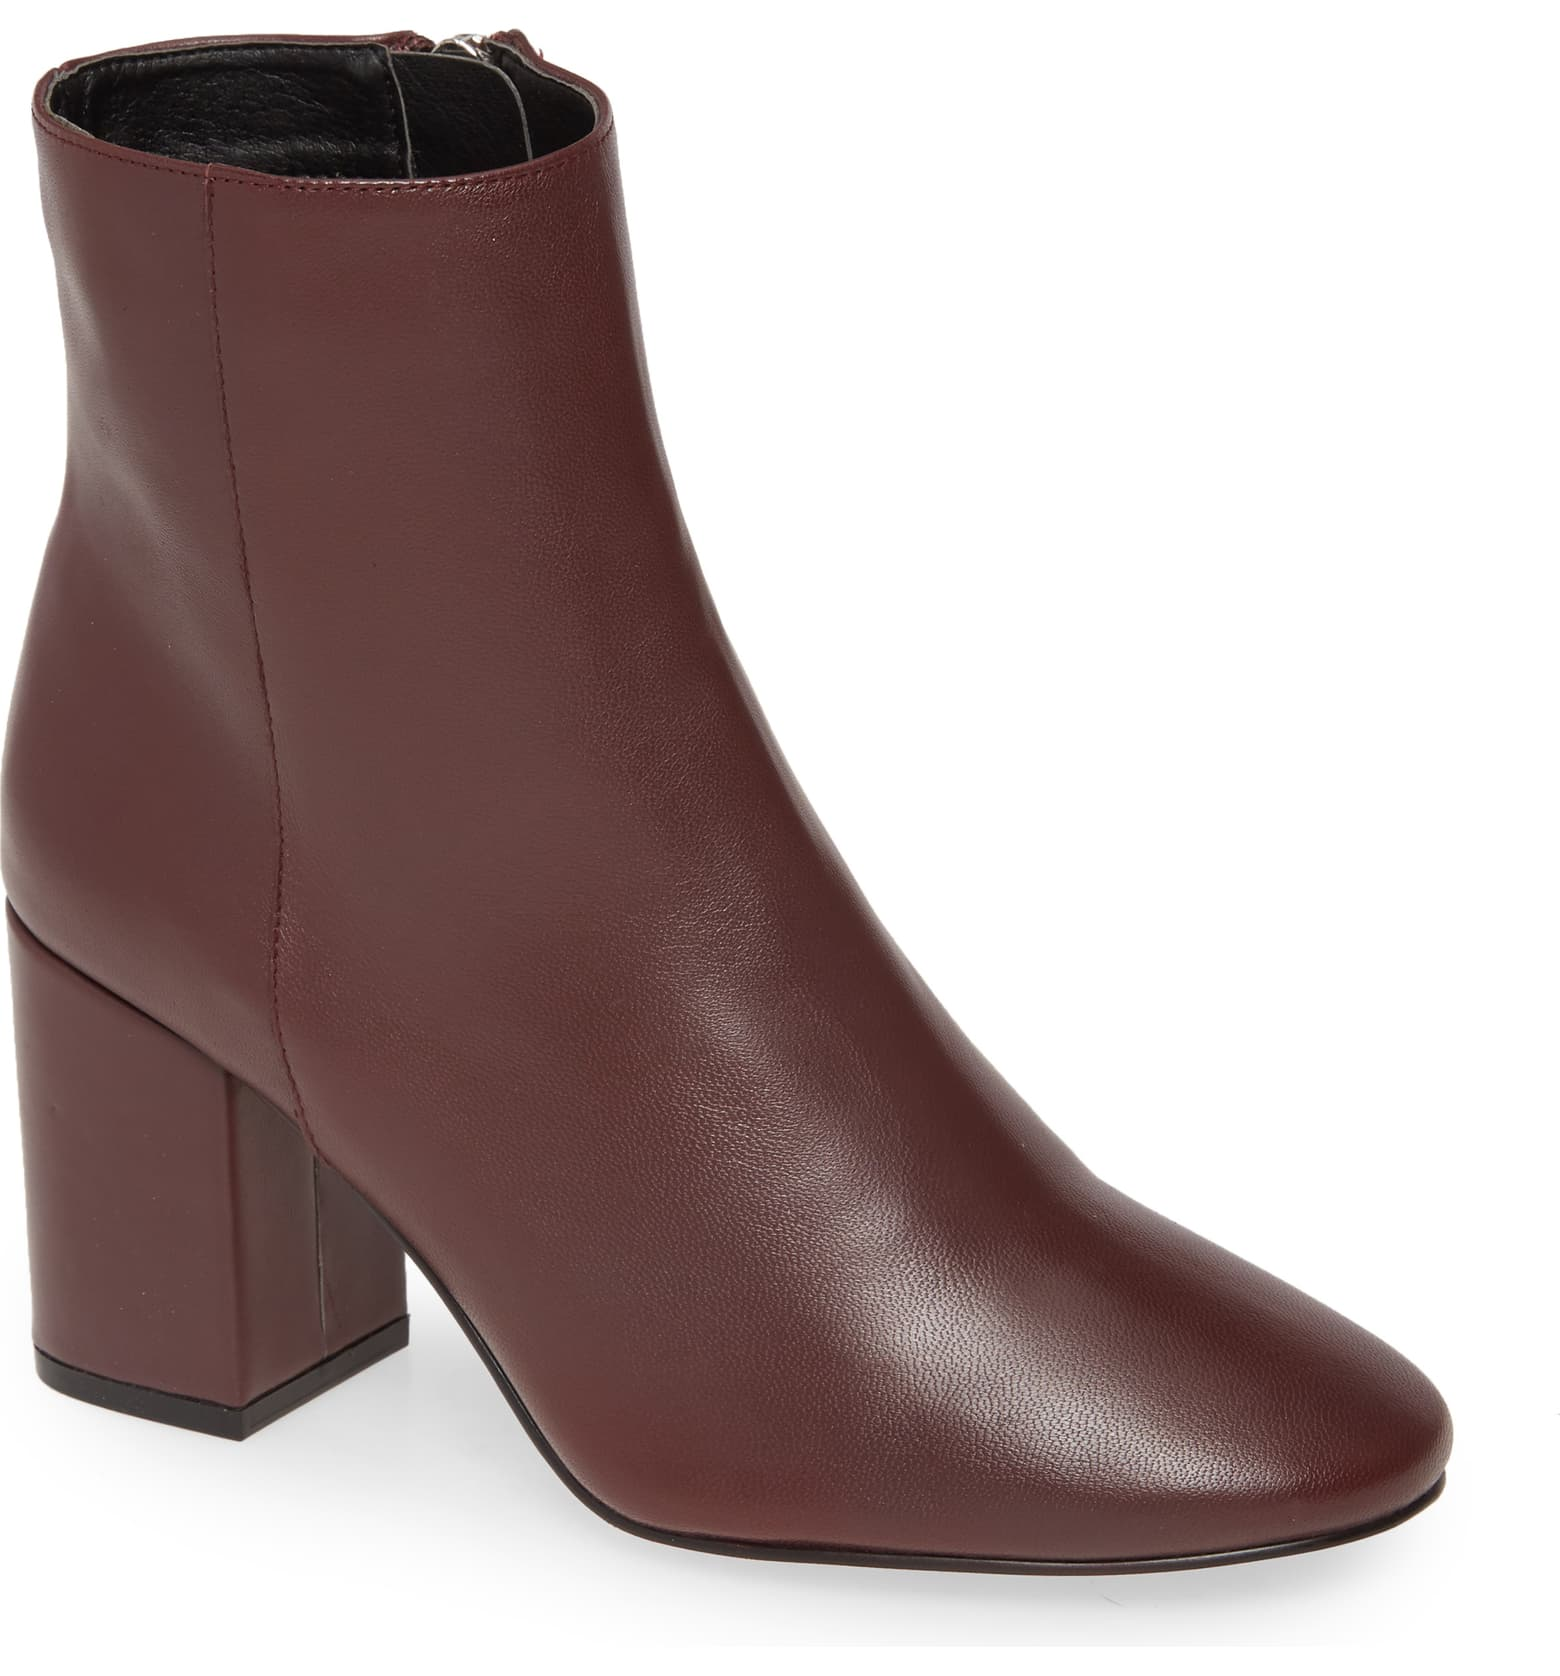 Burgundy leather boots for fall 2019 popular trends.